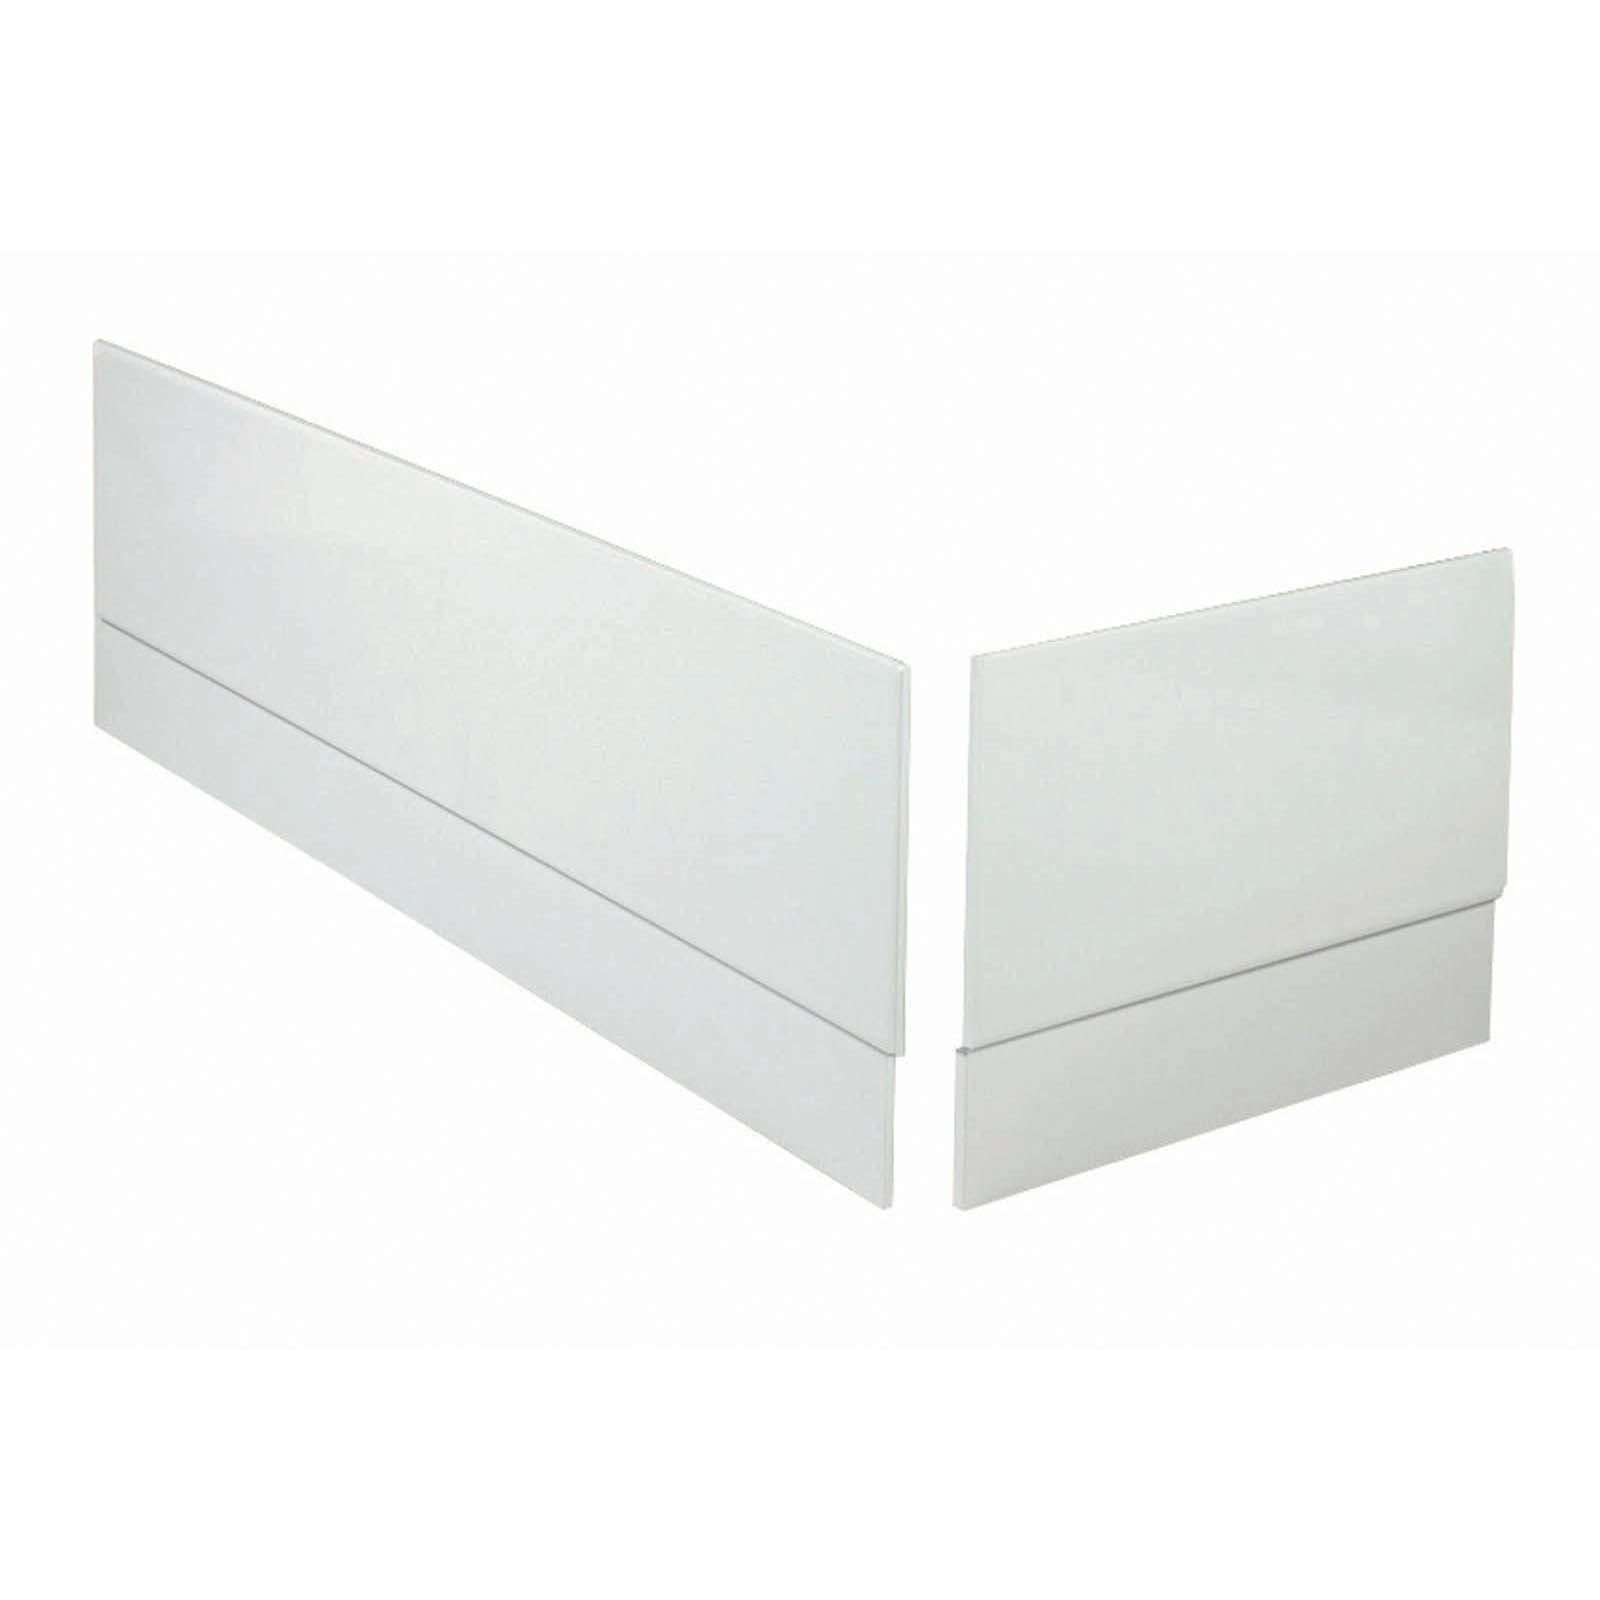 AQUA-line  Bath Panel - Gloss White